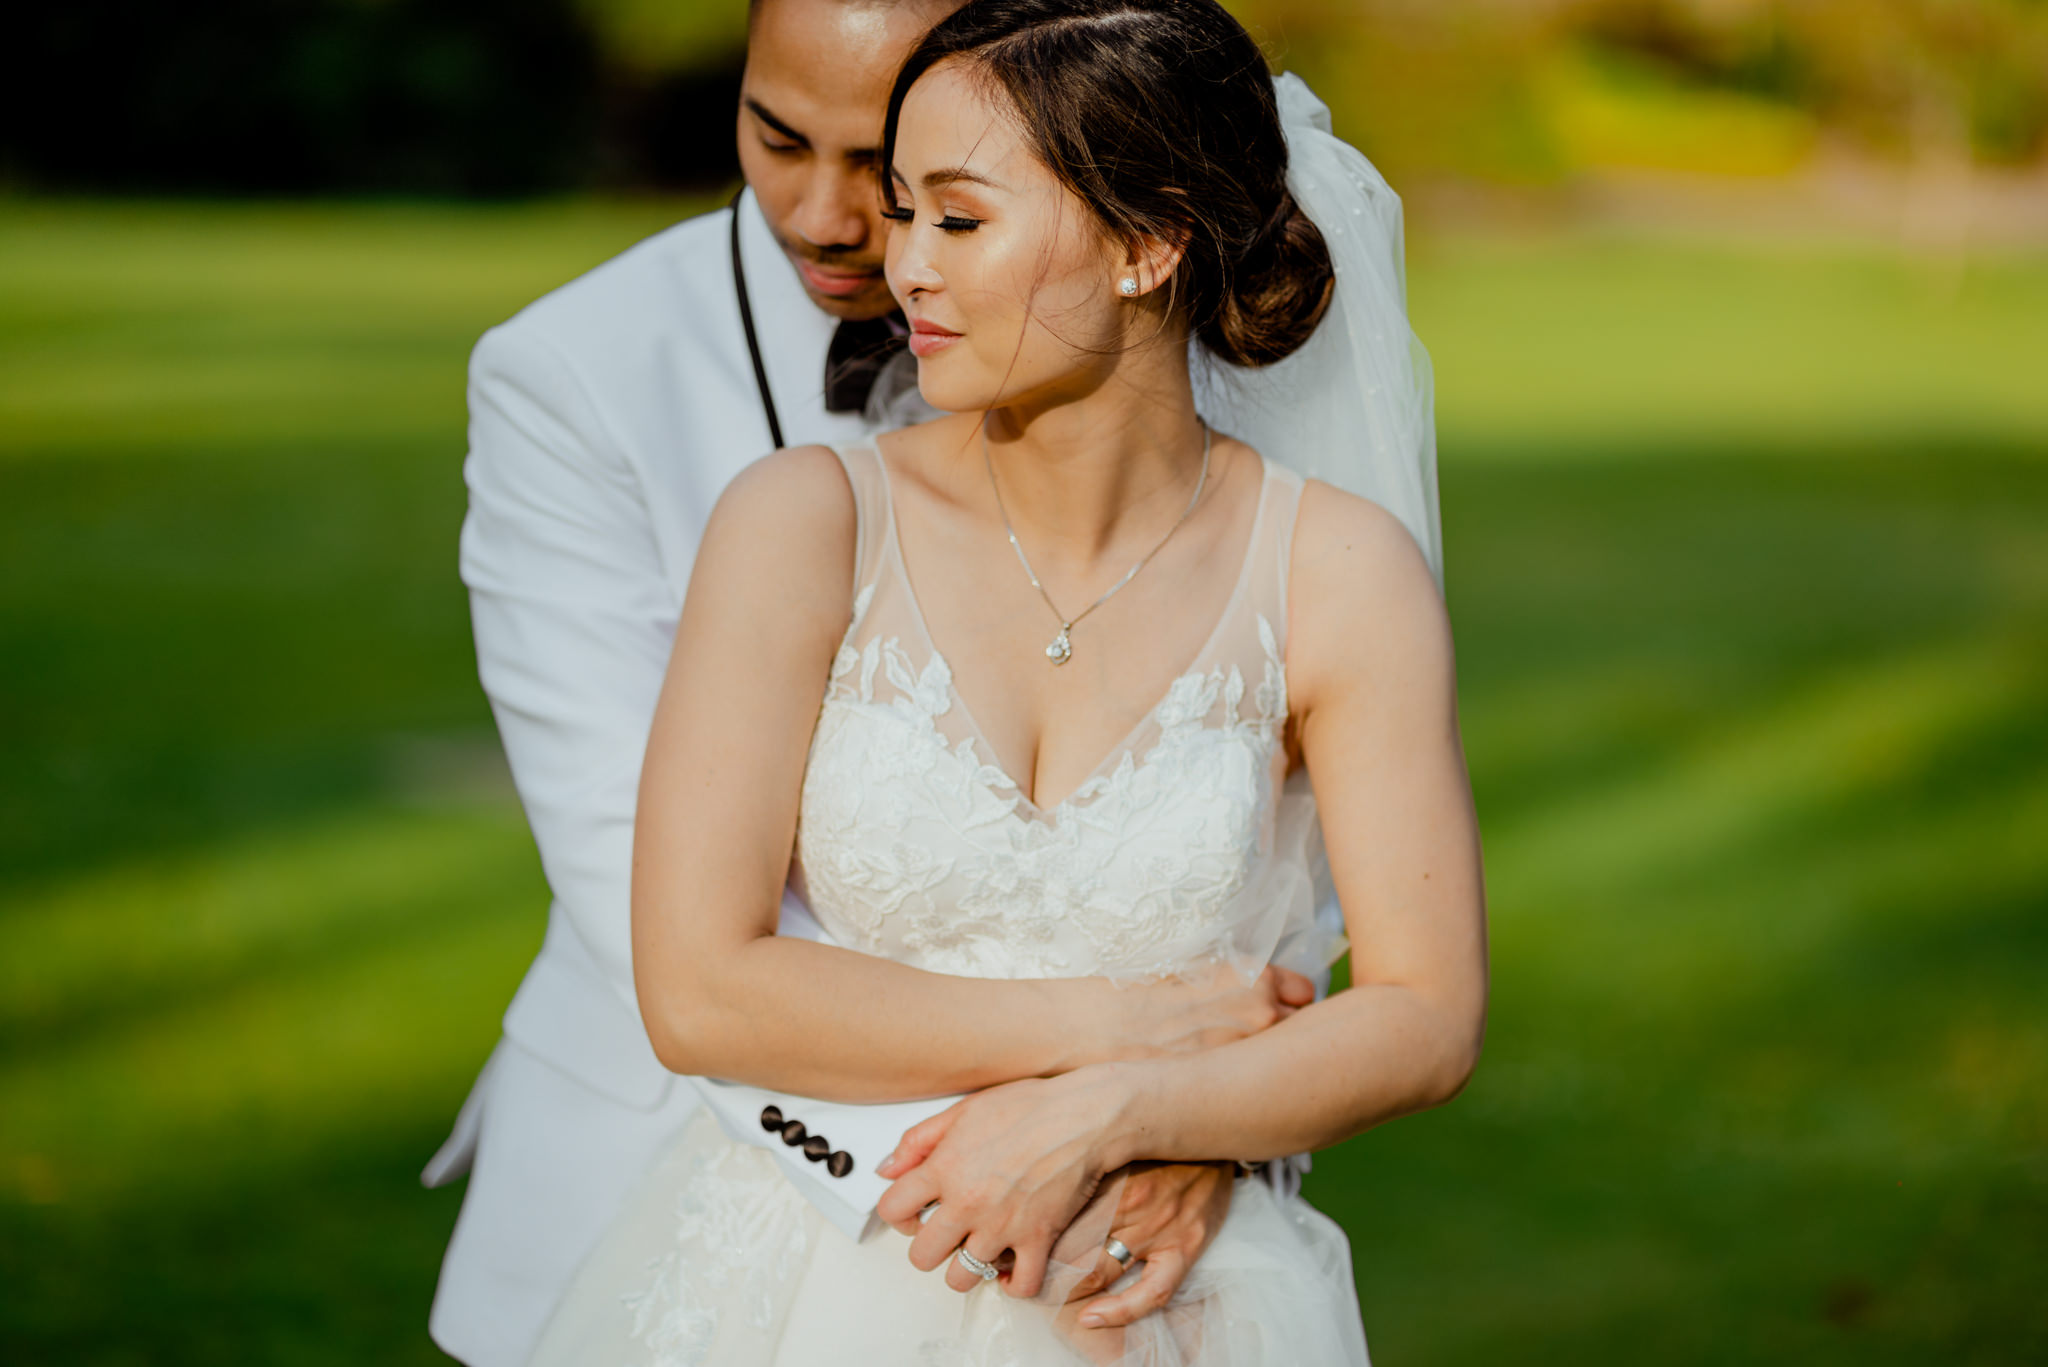 An Asian couple hug each other intimately in their wedding outfits